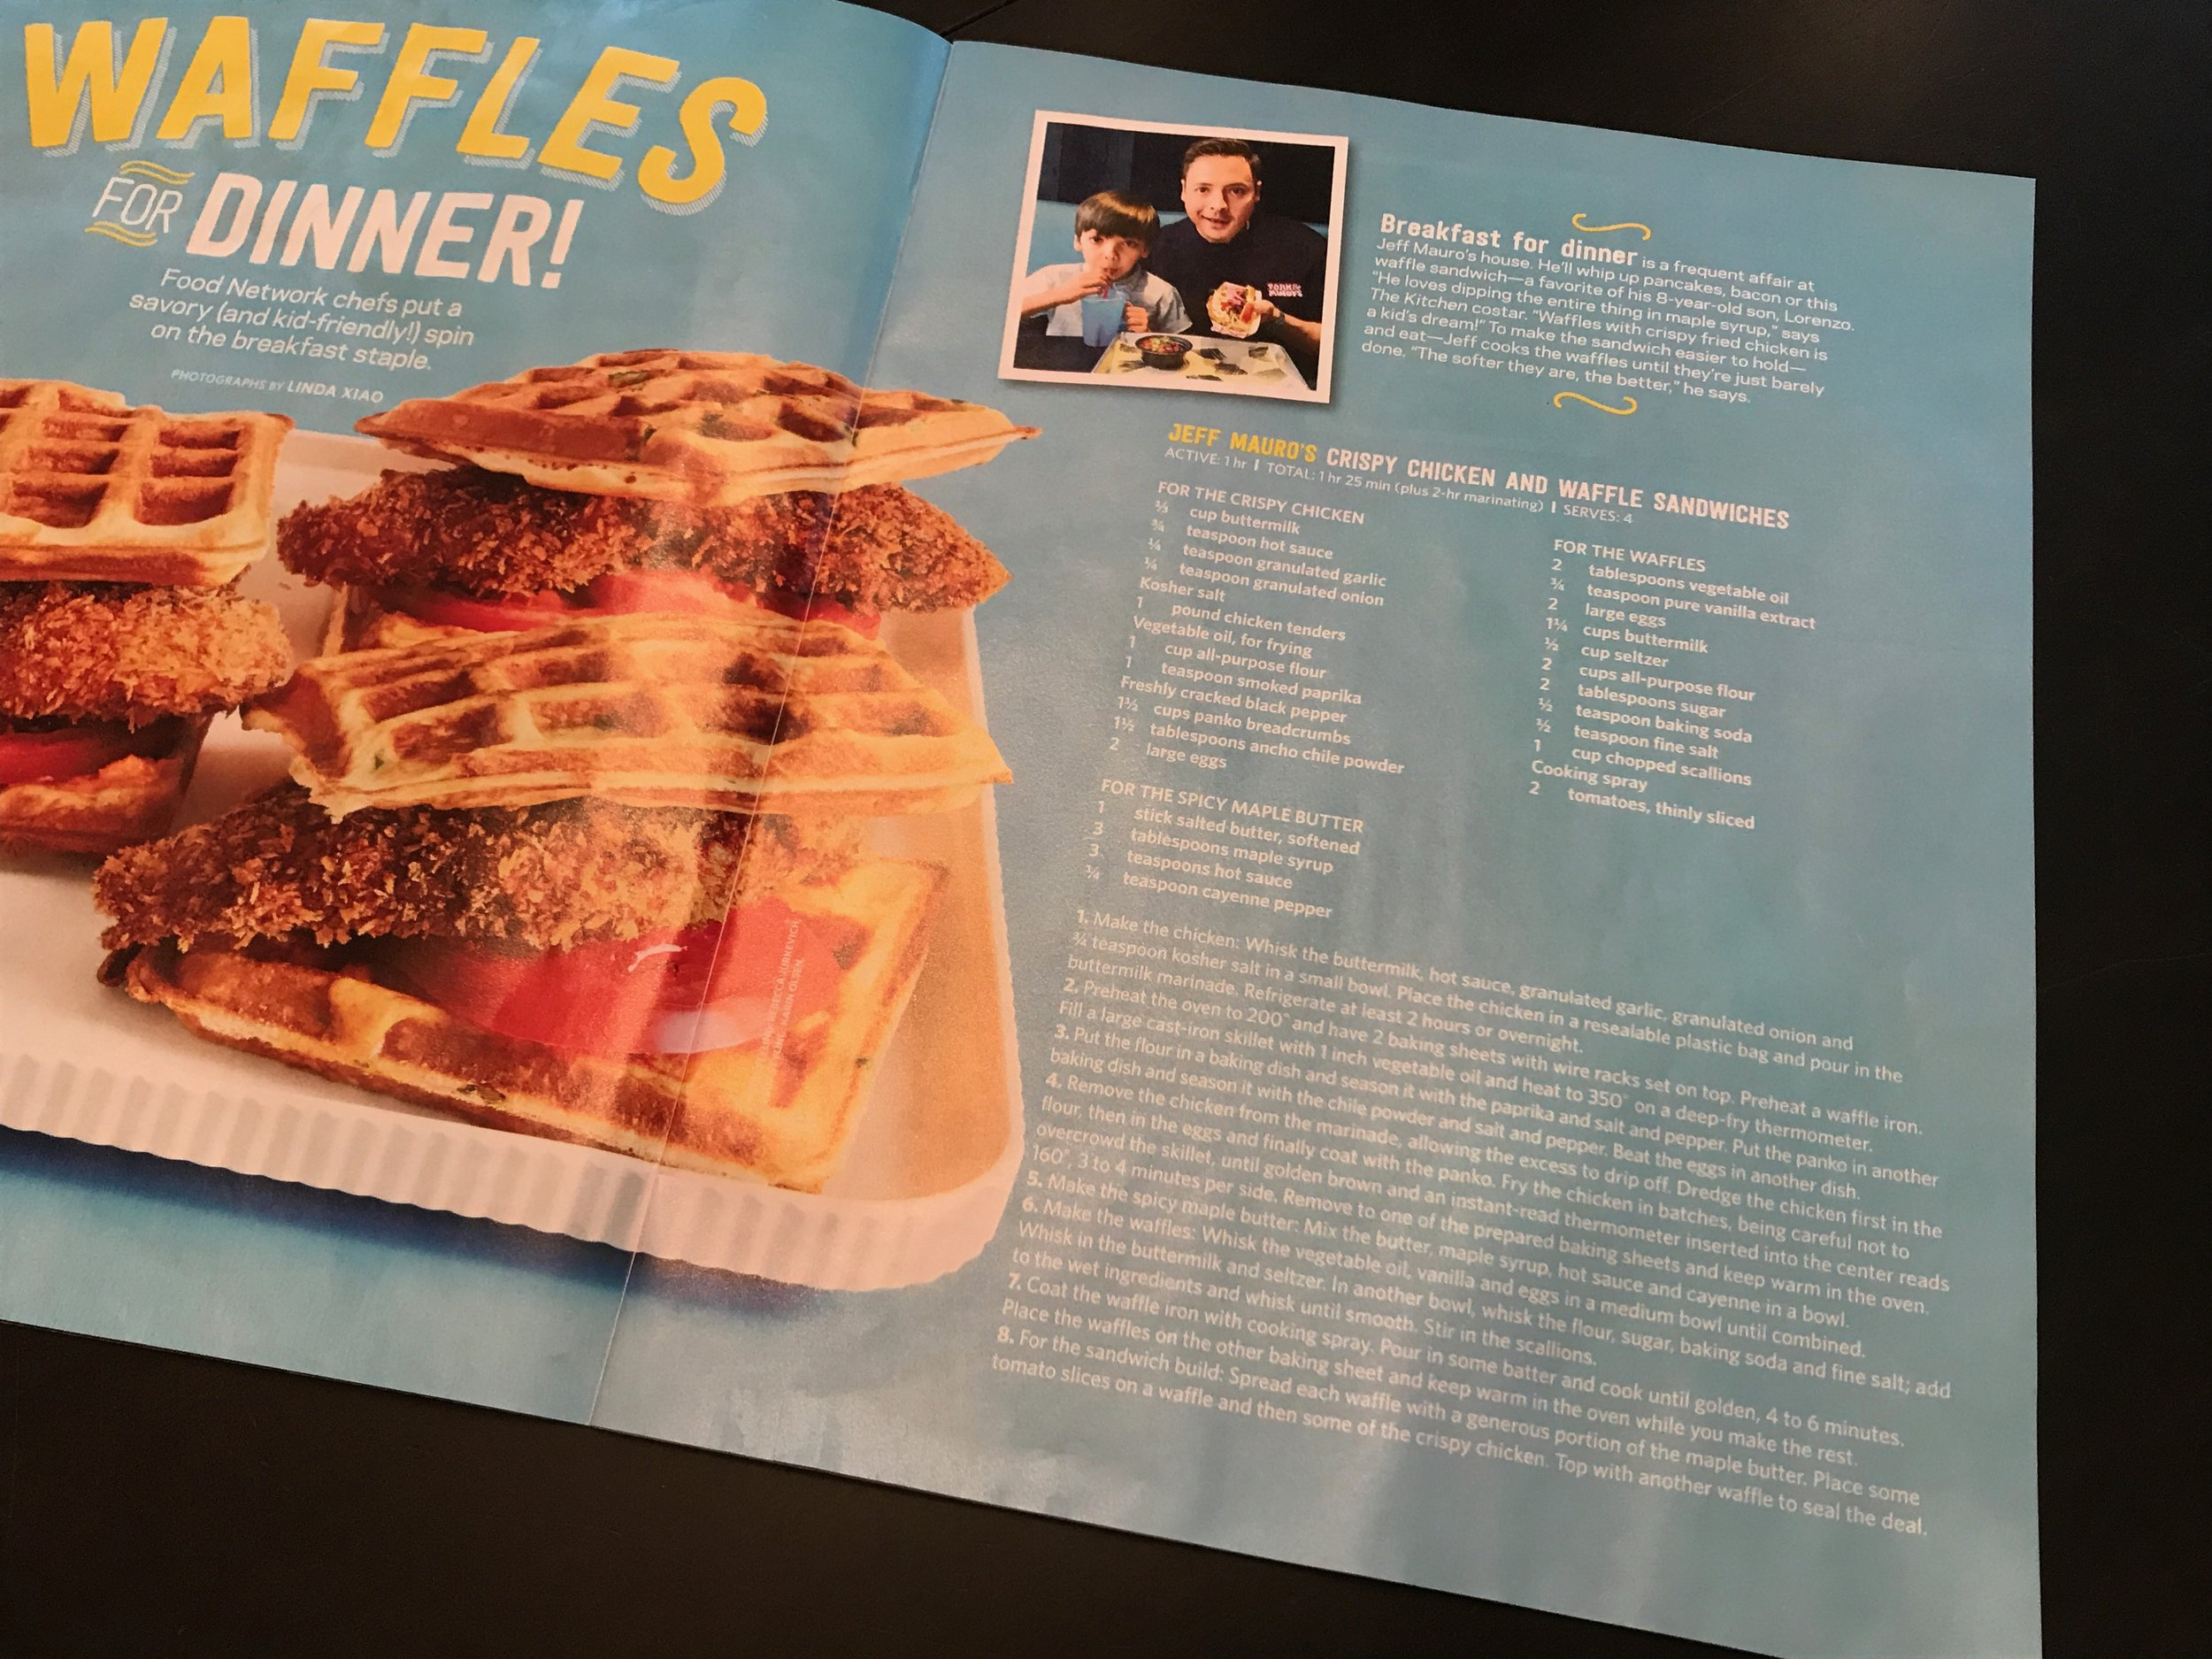 The September 2017 issue of Food Network Magazine came with an insert F.N.M.  Family  which had recipes for some savory waffle recipes. Besides the one above, Haylie Duff's Ham & Cheese Waffles and Kelsey Nixon's Cornbread-Cheddar Waffles with Scrambled Eggs are in the issue.